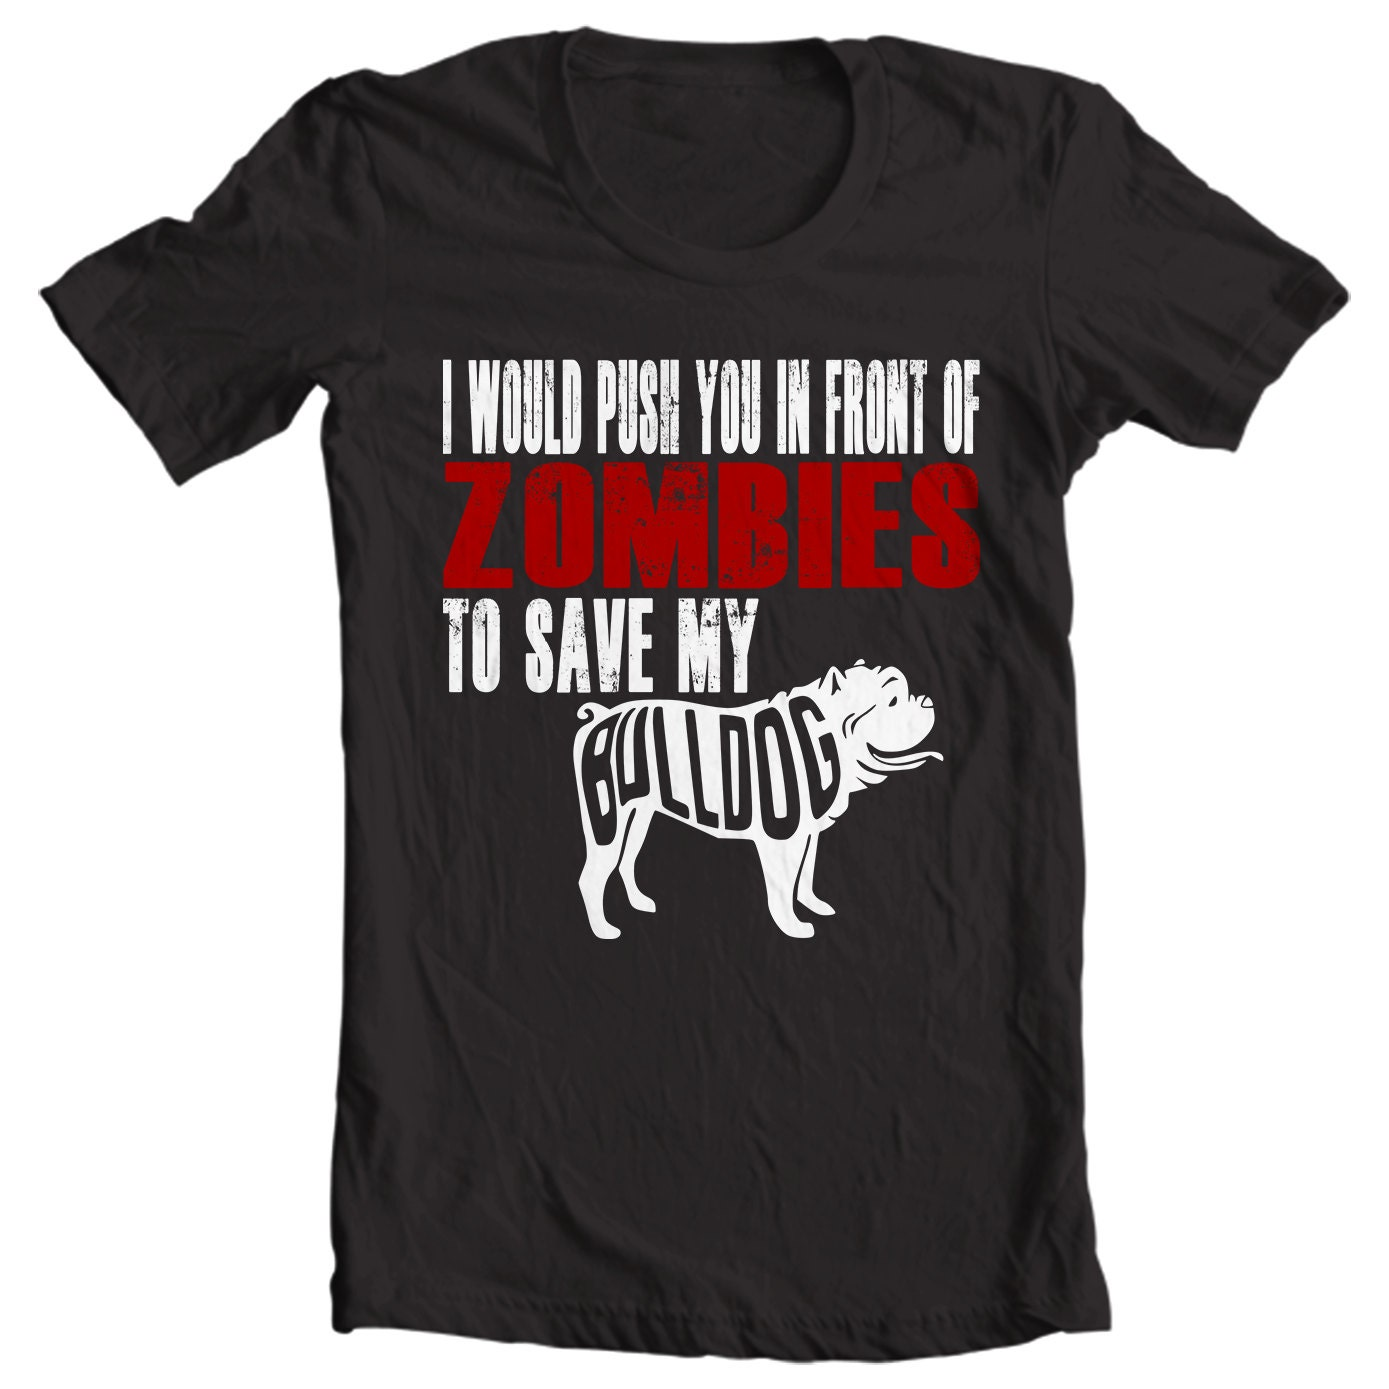 Bulldog T-shirt - I Would Push You In Front Of Zombies To Save My Bulldog - My Dog Bulldog T-shirt